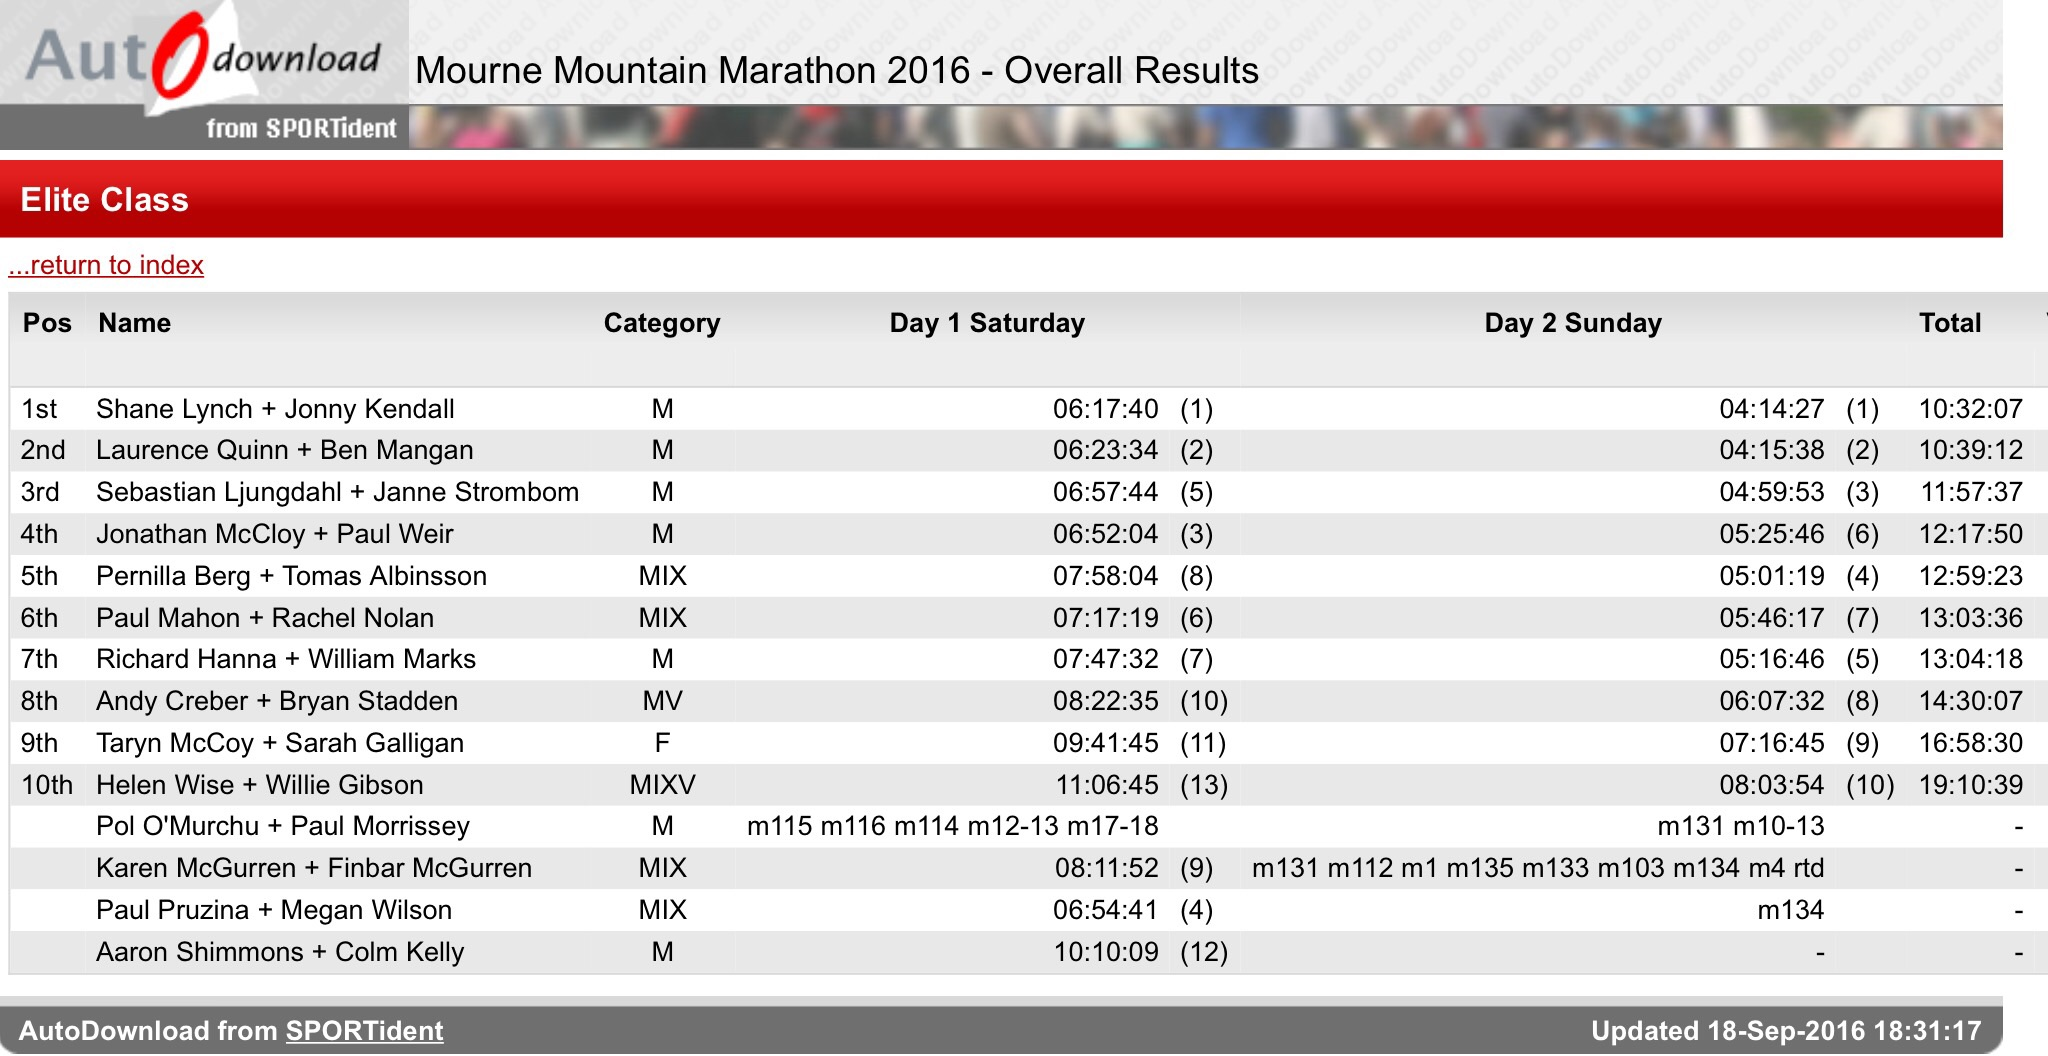 Elite Class Result, Mourne Mountain Marathon 2016.